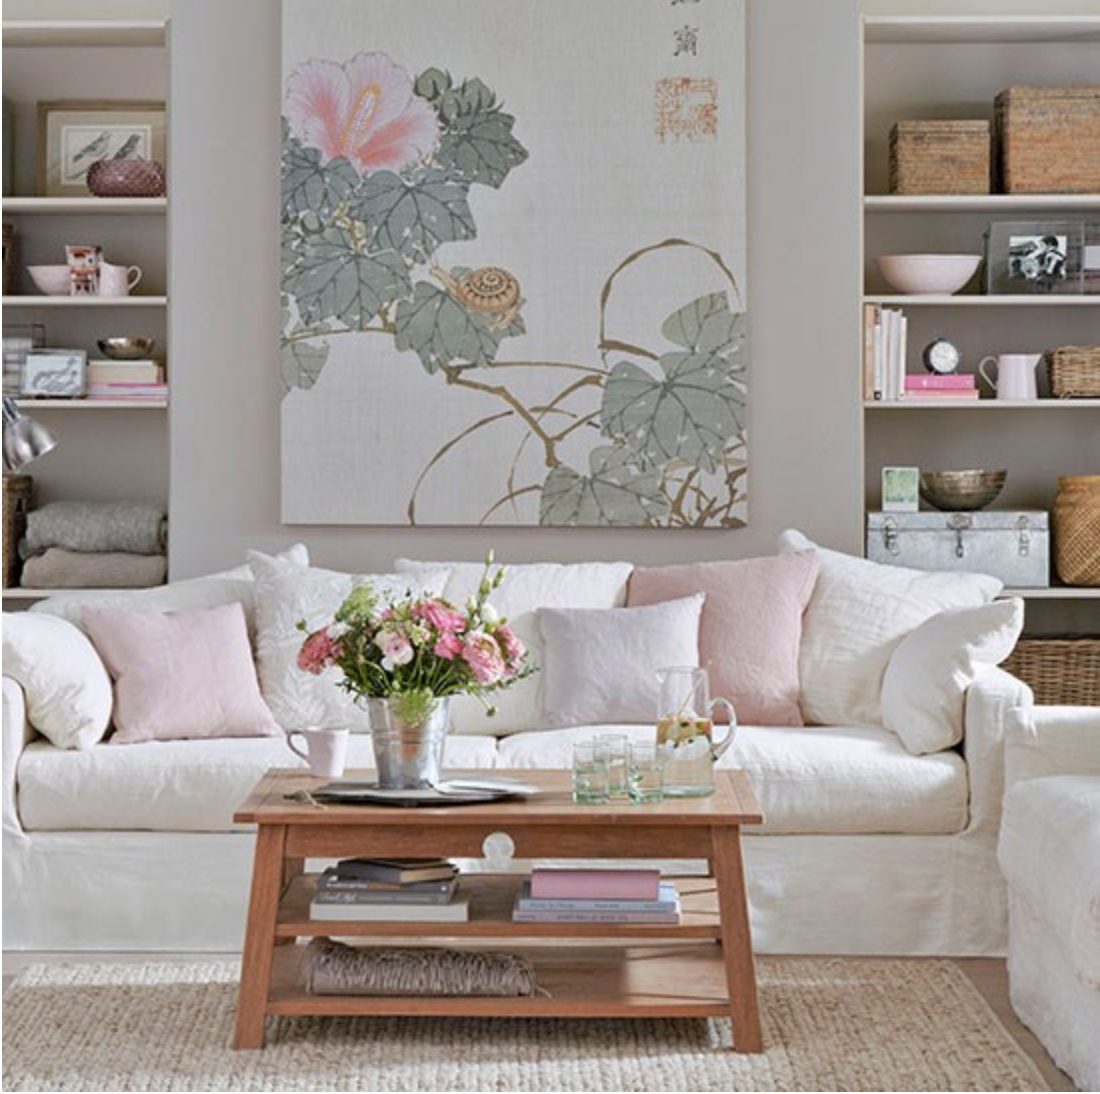 Salas pequenas romanticas e muito charmosas decorandoonline for Living room decor ideas 2016